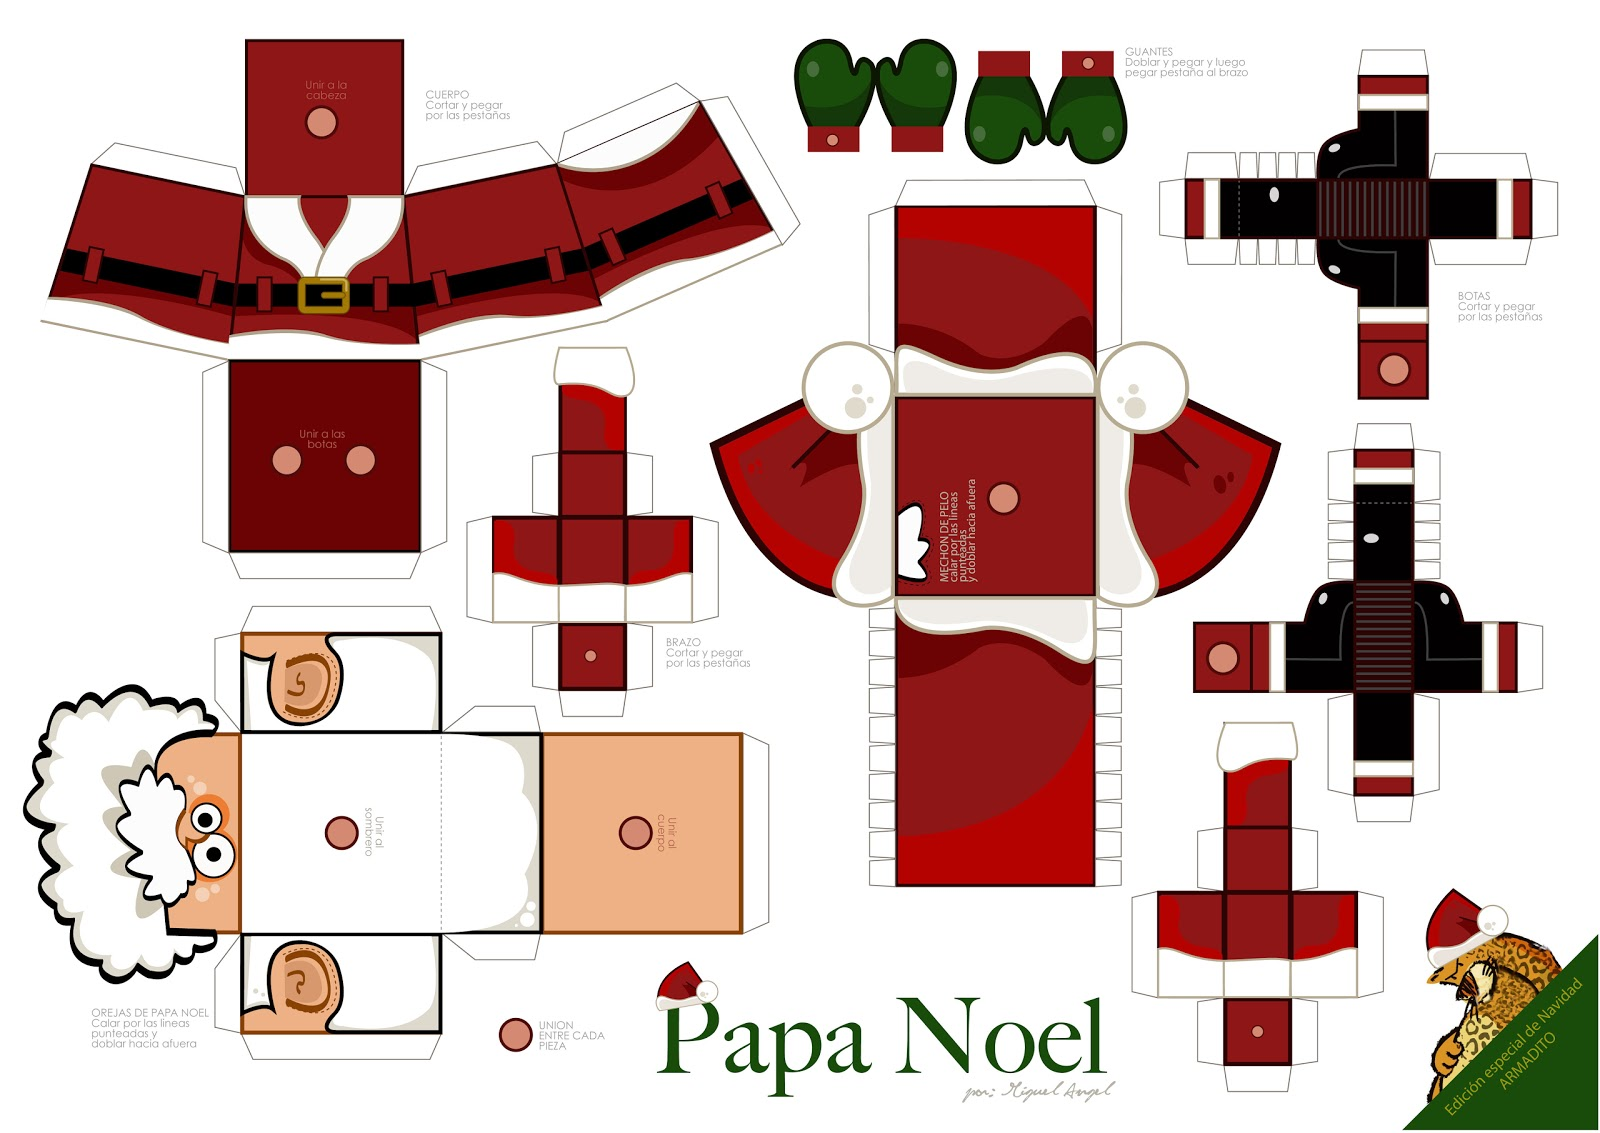 Pin Fuente Papertoys on Pinterest